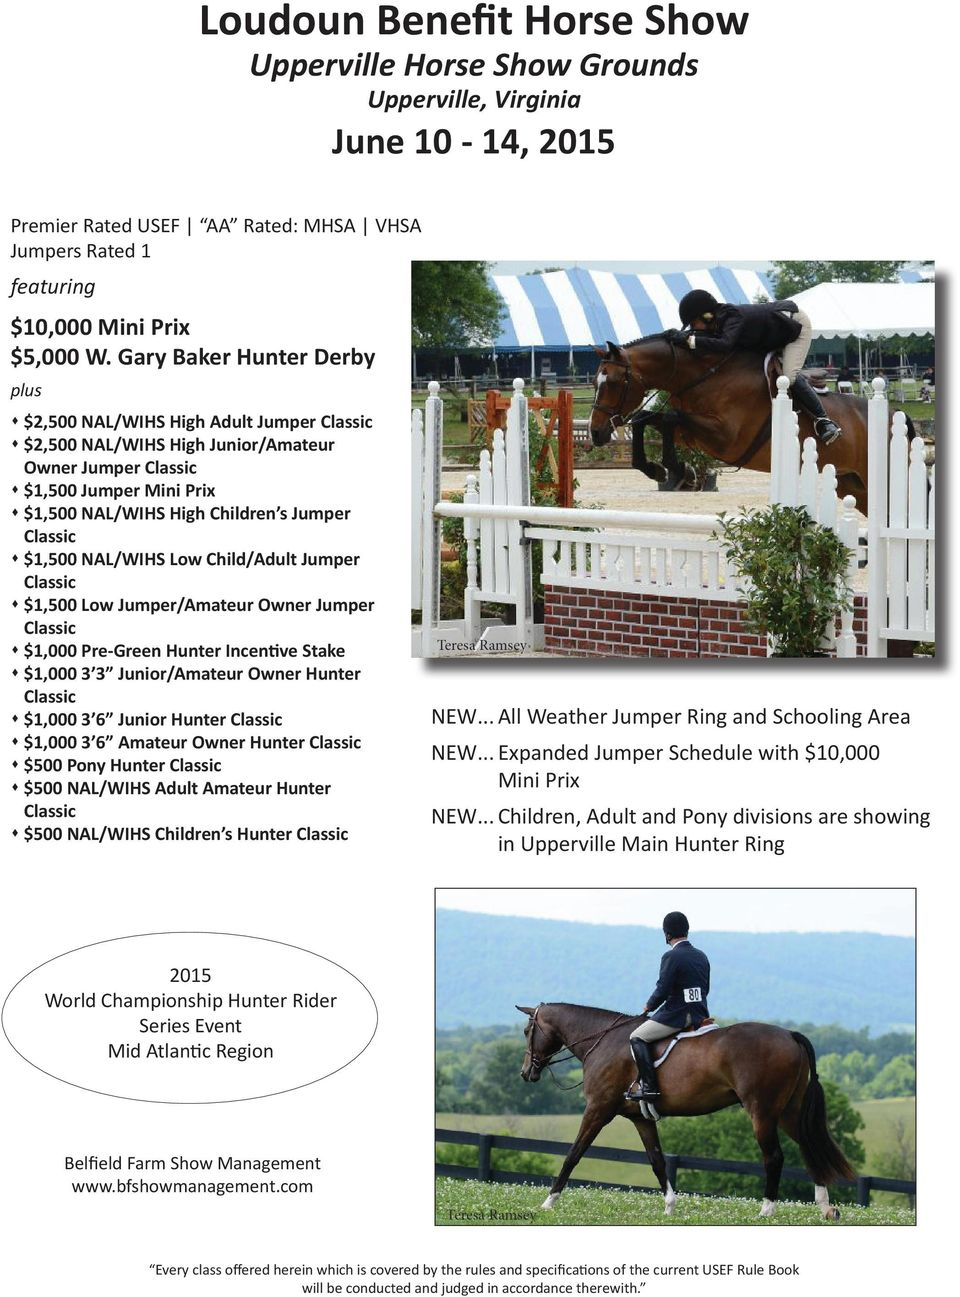 Classic s $1,500 NAL/WIHS Low Child/Adult Jumper Classic s $1,500 Low Jumper/Amateur Owner Jumper Classic s $1,000 Pre-Green Hunter Incentive Stake s $1,000 3 3 Junior/Amateur Owner Hunter Classic s